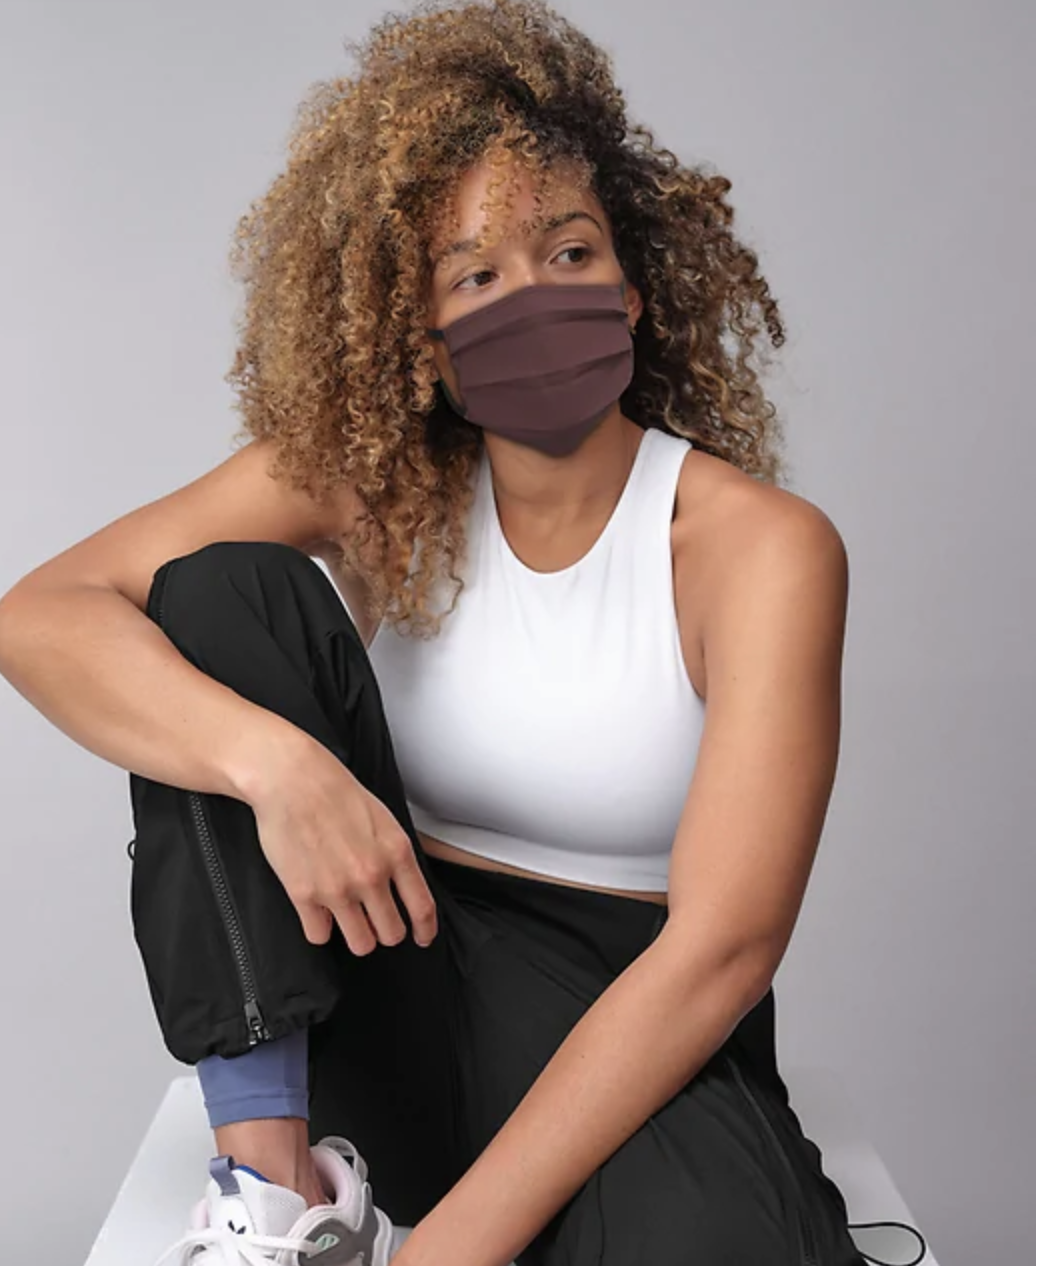 A model in athletic gear and a face mask